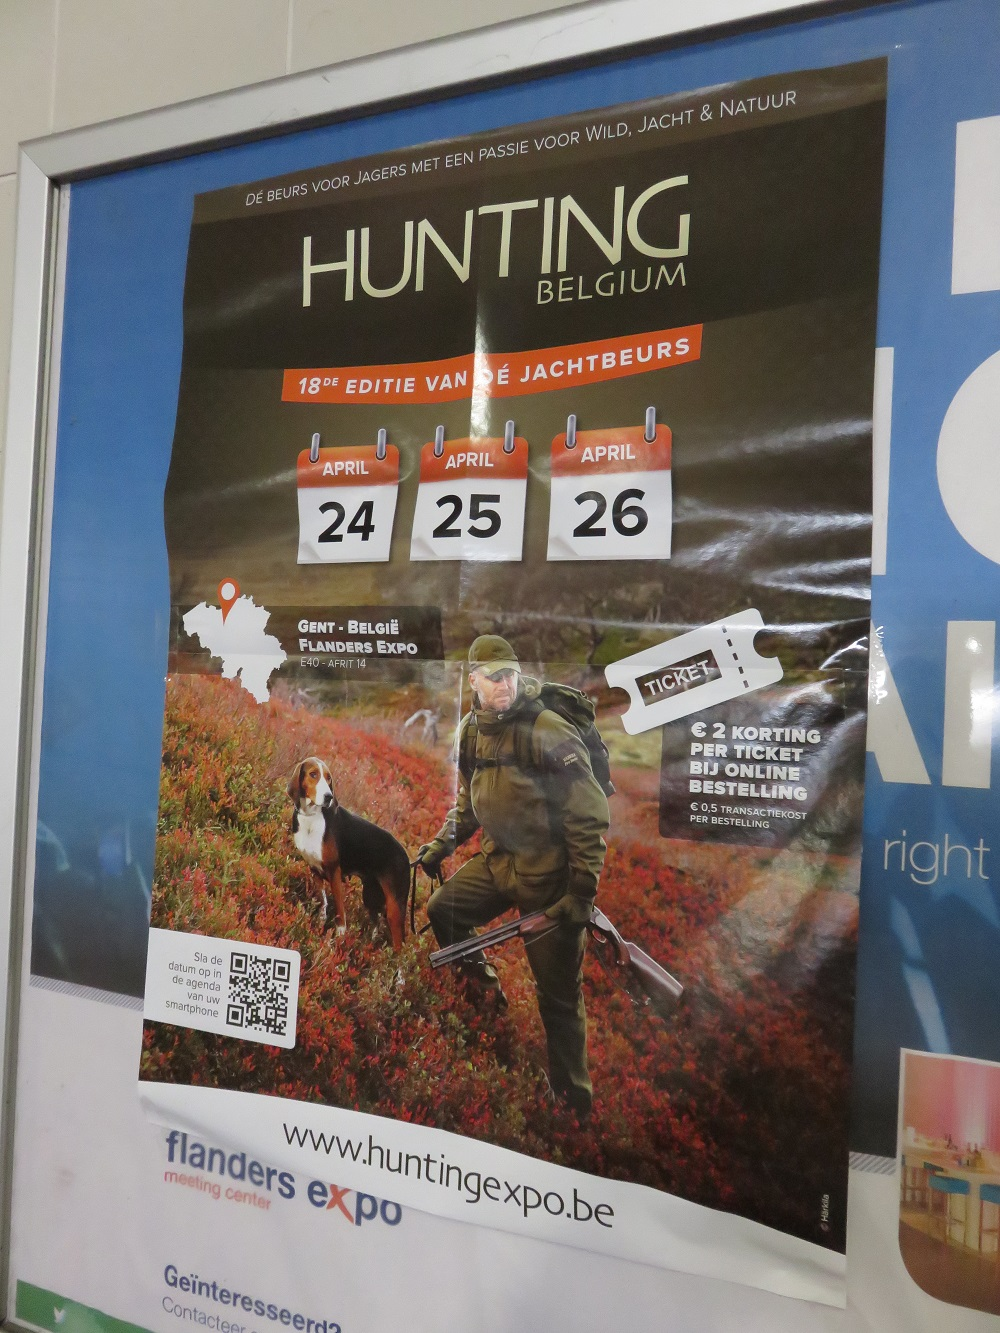 Huntingexpo, April 2015, Ghent, belgium